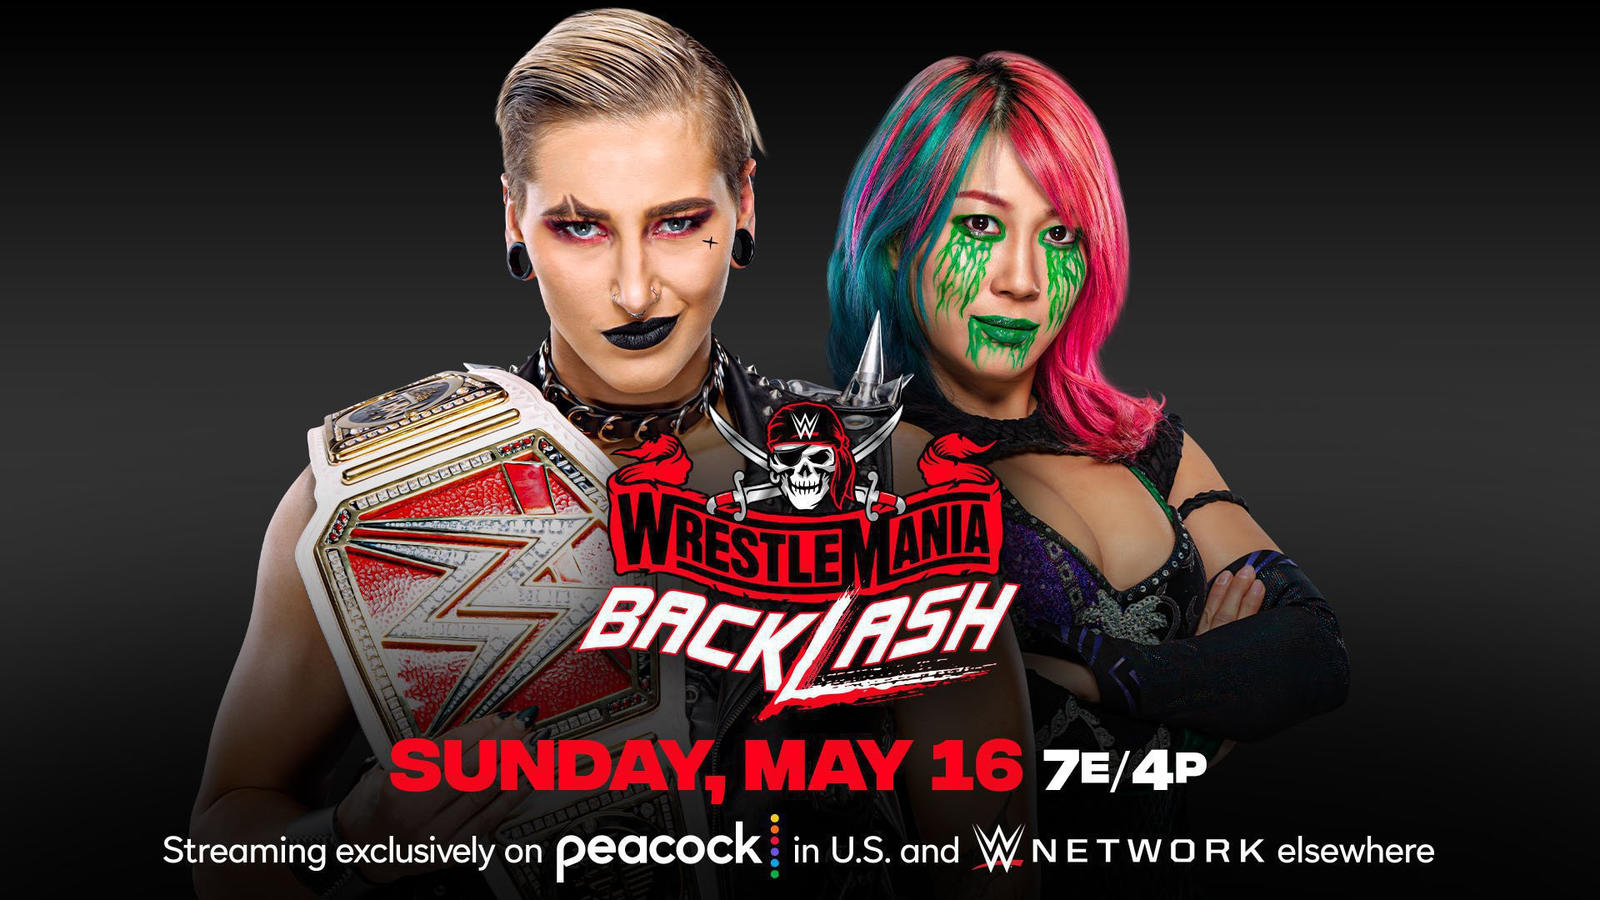 Raw Women's Championship Announced For WrestleMania Backlash